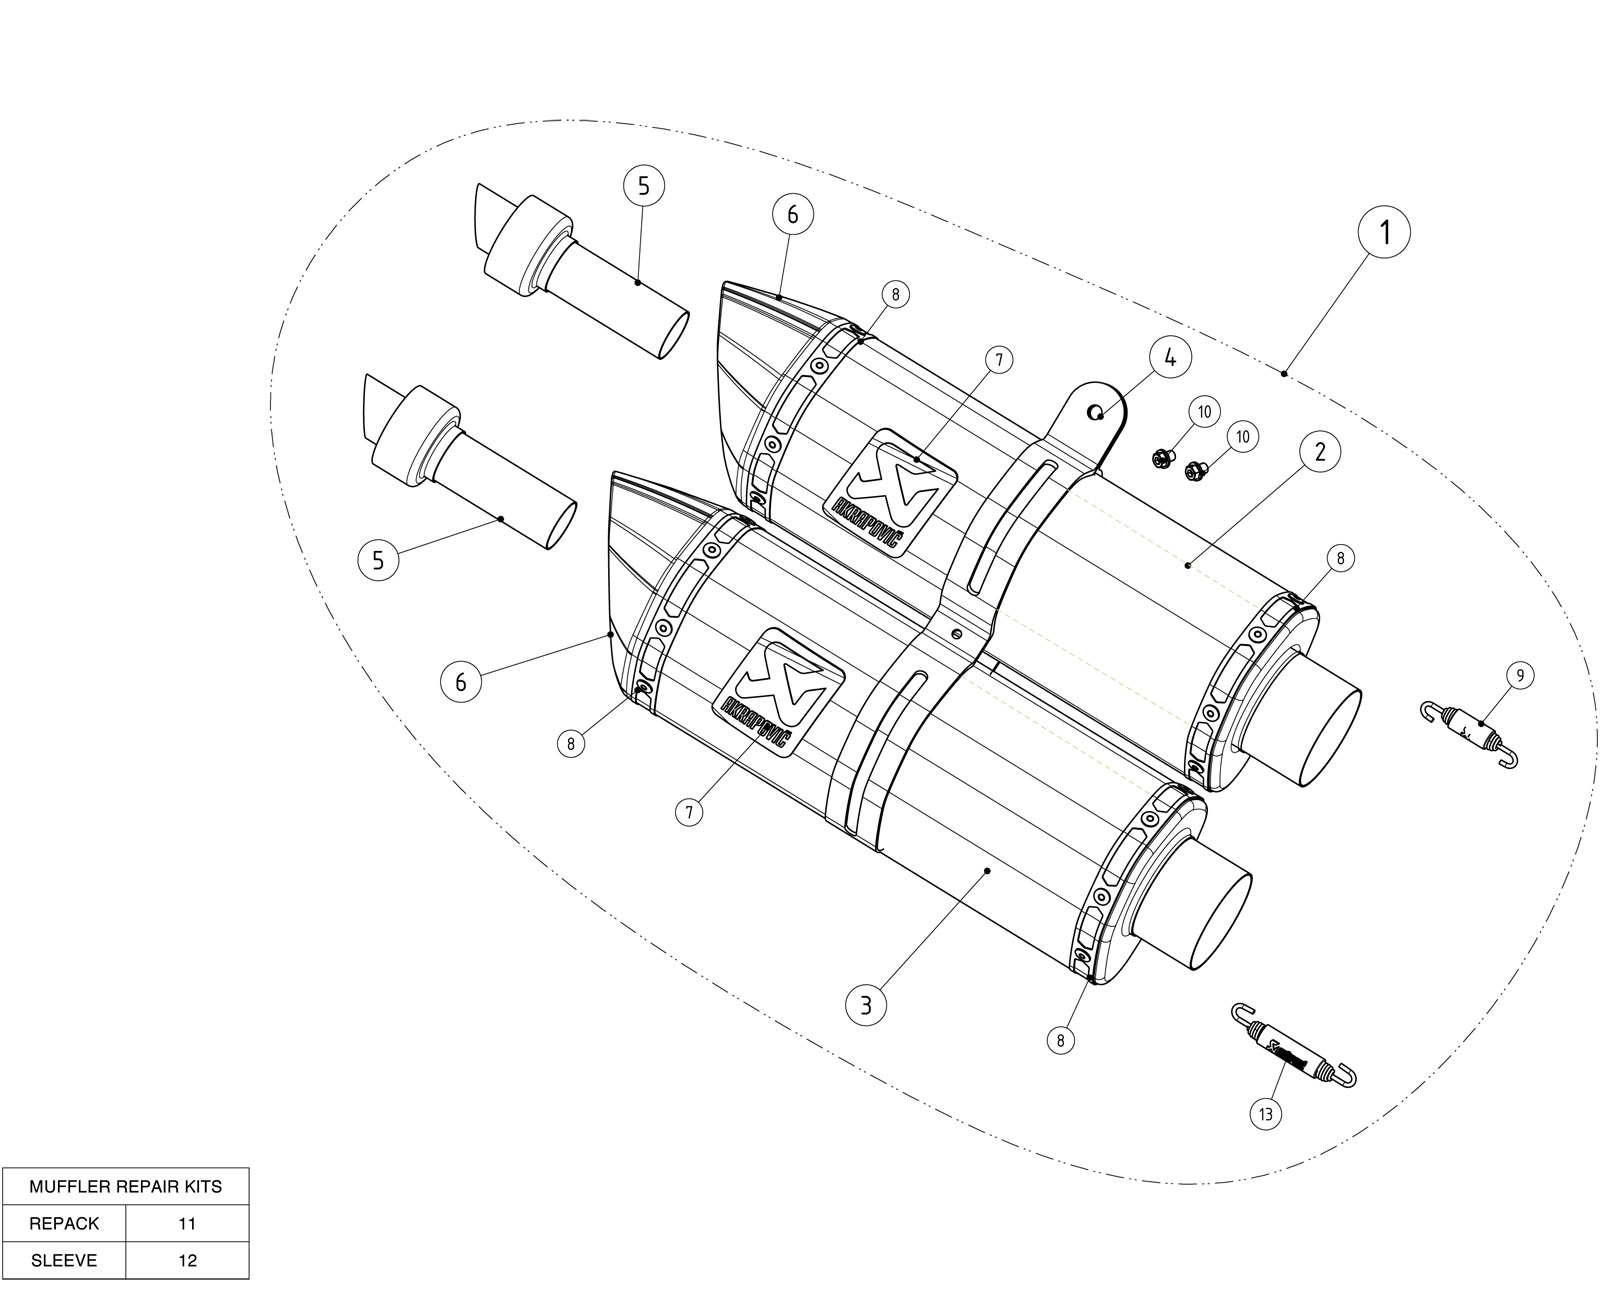 1984 Honda Goldwing Turn Signal Wiring Diagram. Honda